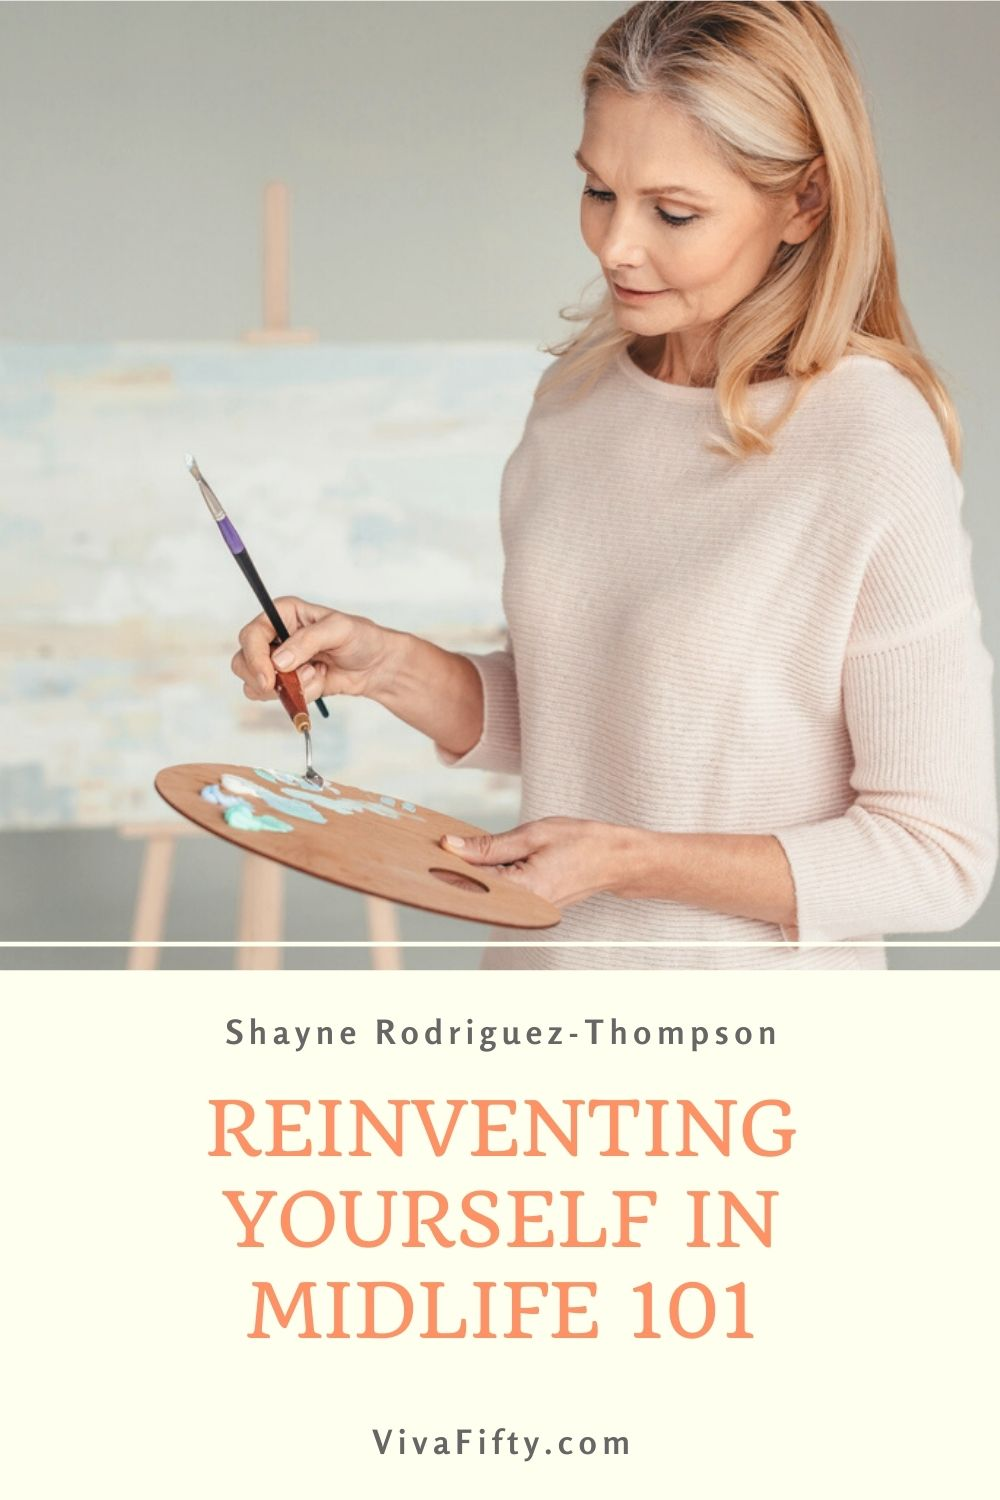 Reinventing yourself doesn´t mean a complete overhaul. You can actually take it in steps. Here are a few that will get you started on your reinvention.